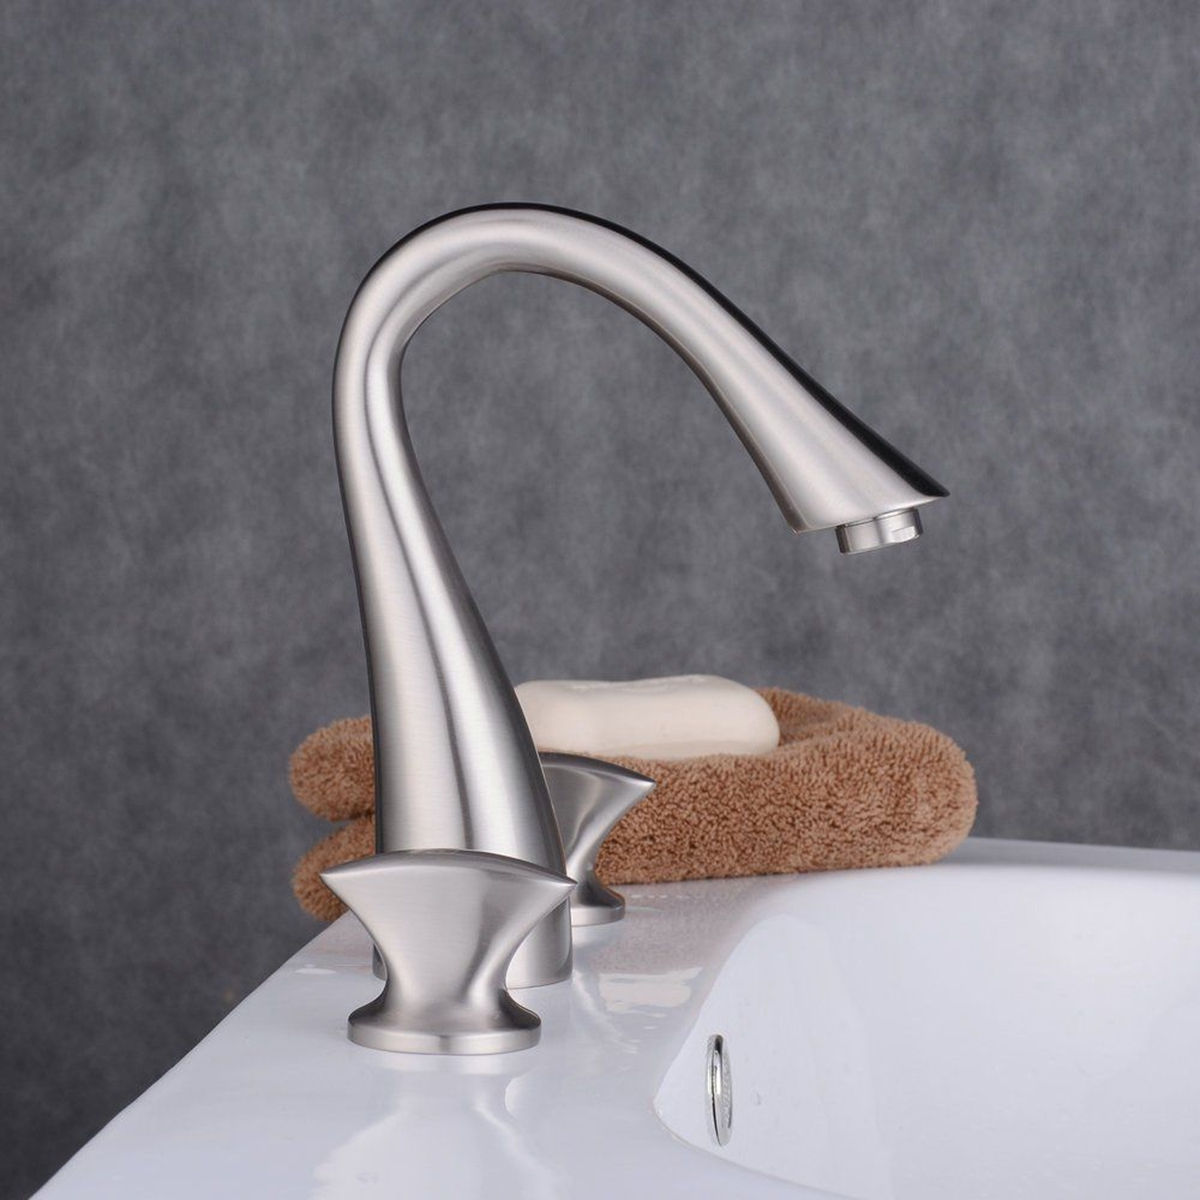 Luxury Bathroom Widespread Sink Faucet 3 Hole Mixer Tap Single Handle Kitchen Faucet